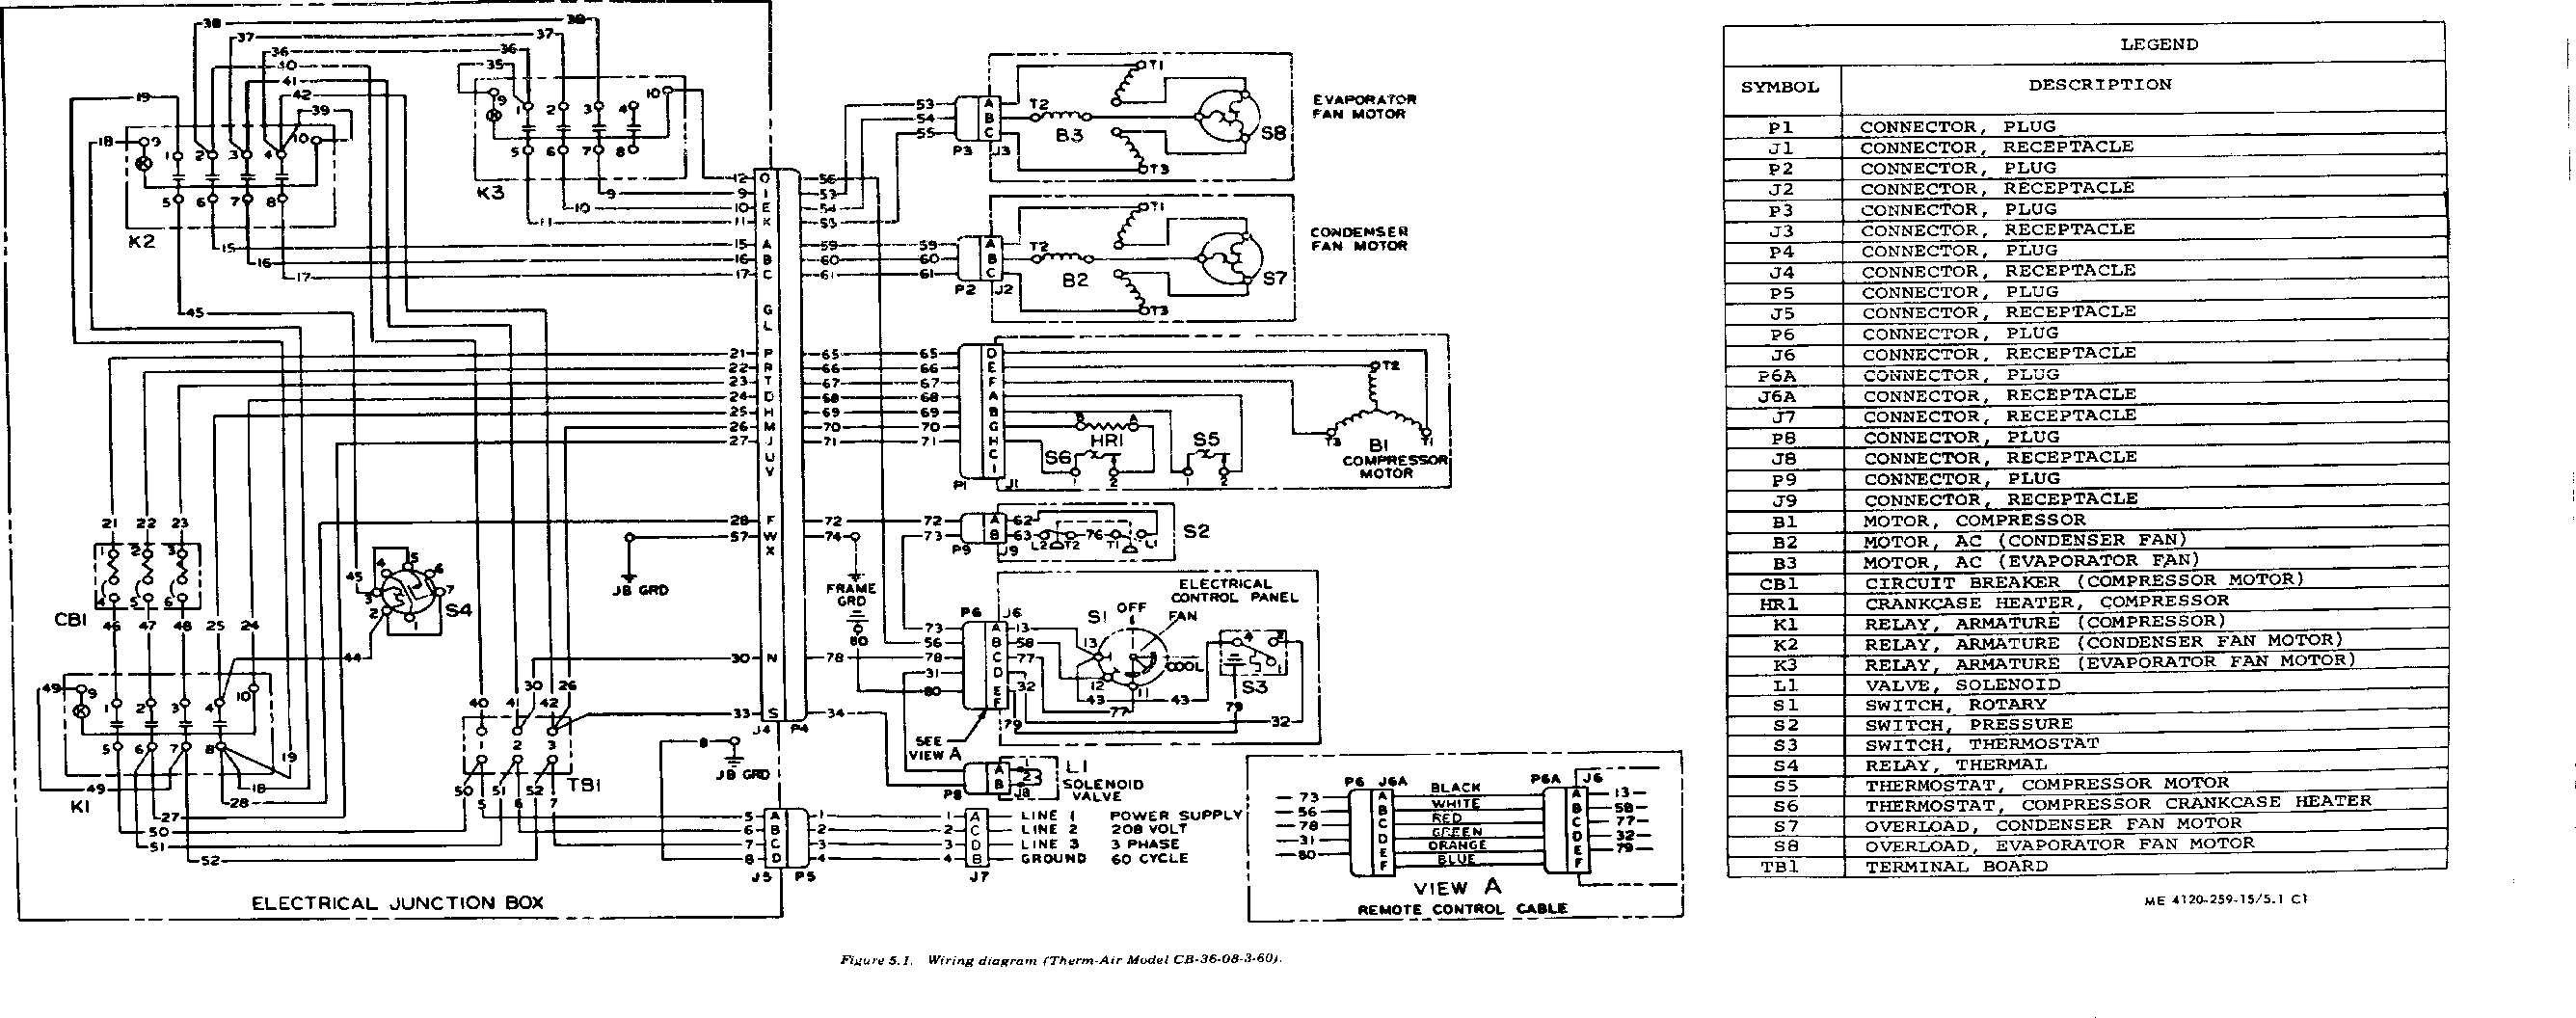 Trane Xl1200 Heat Pump Wiring Diagram